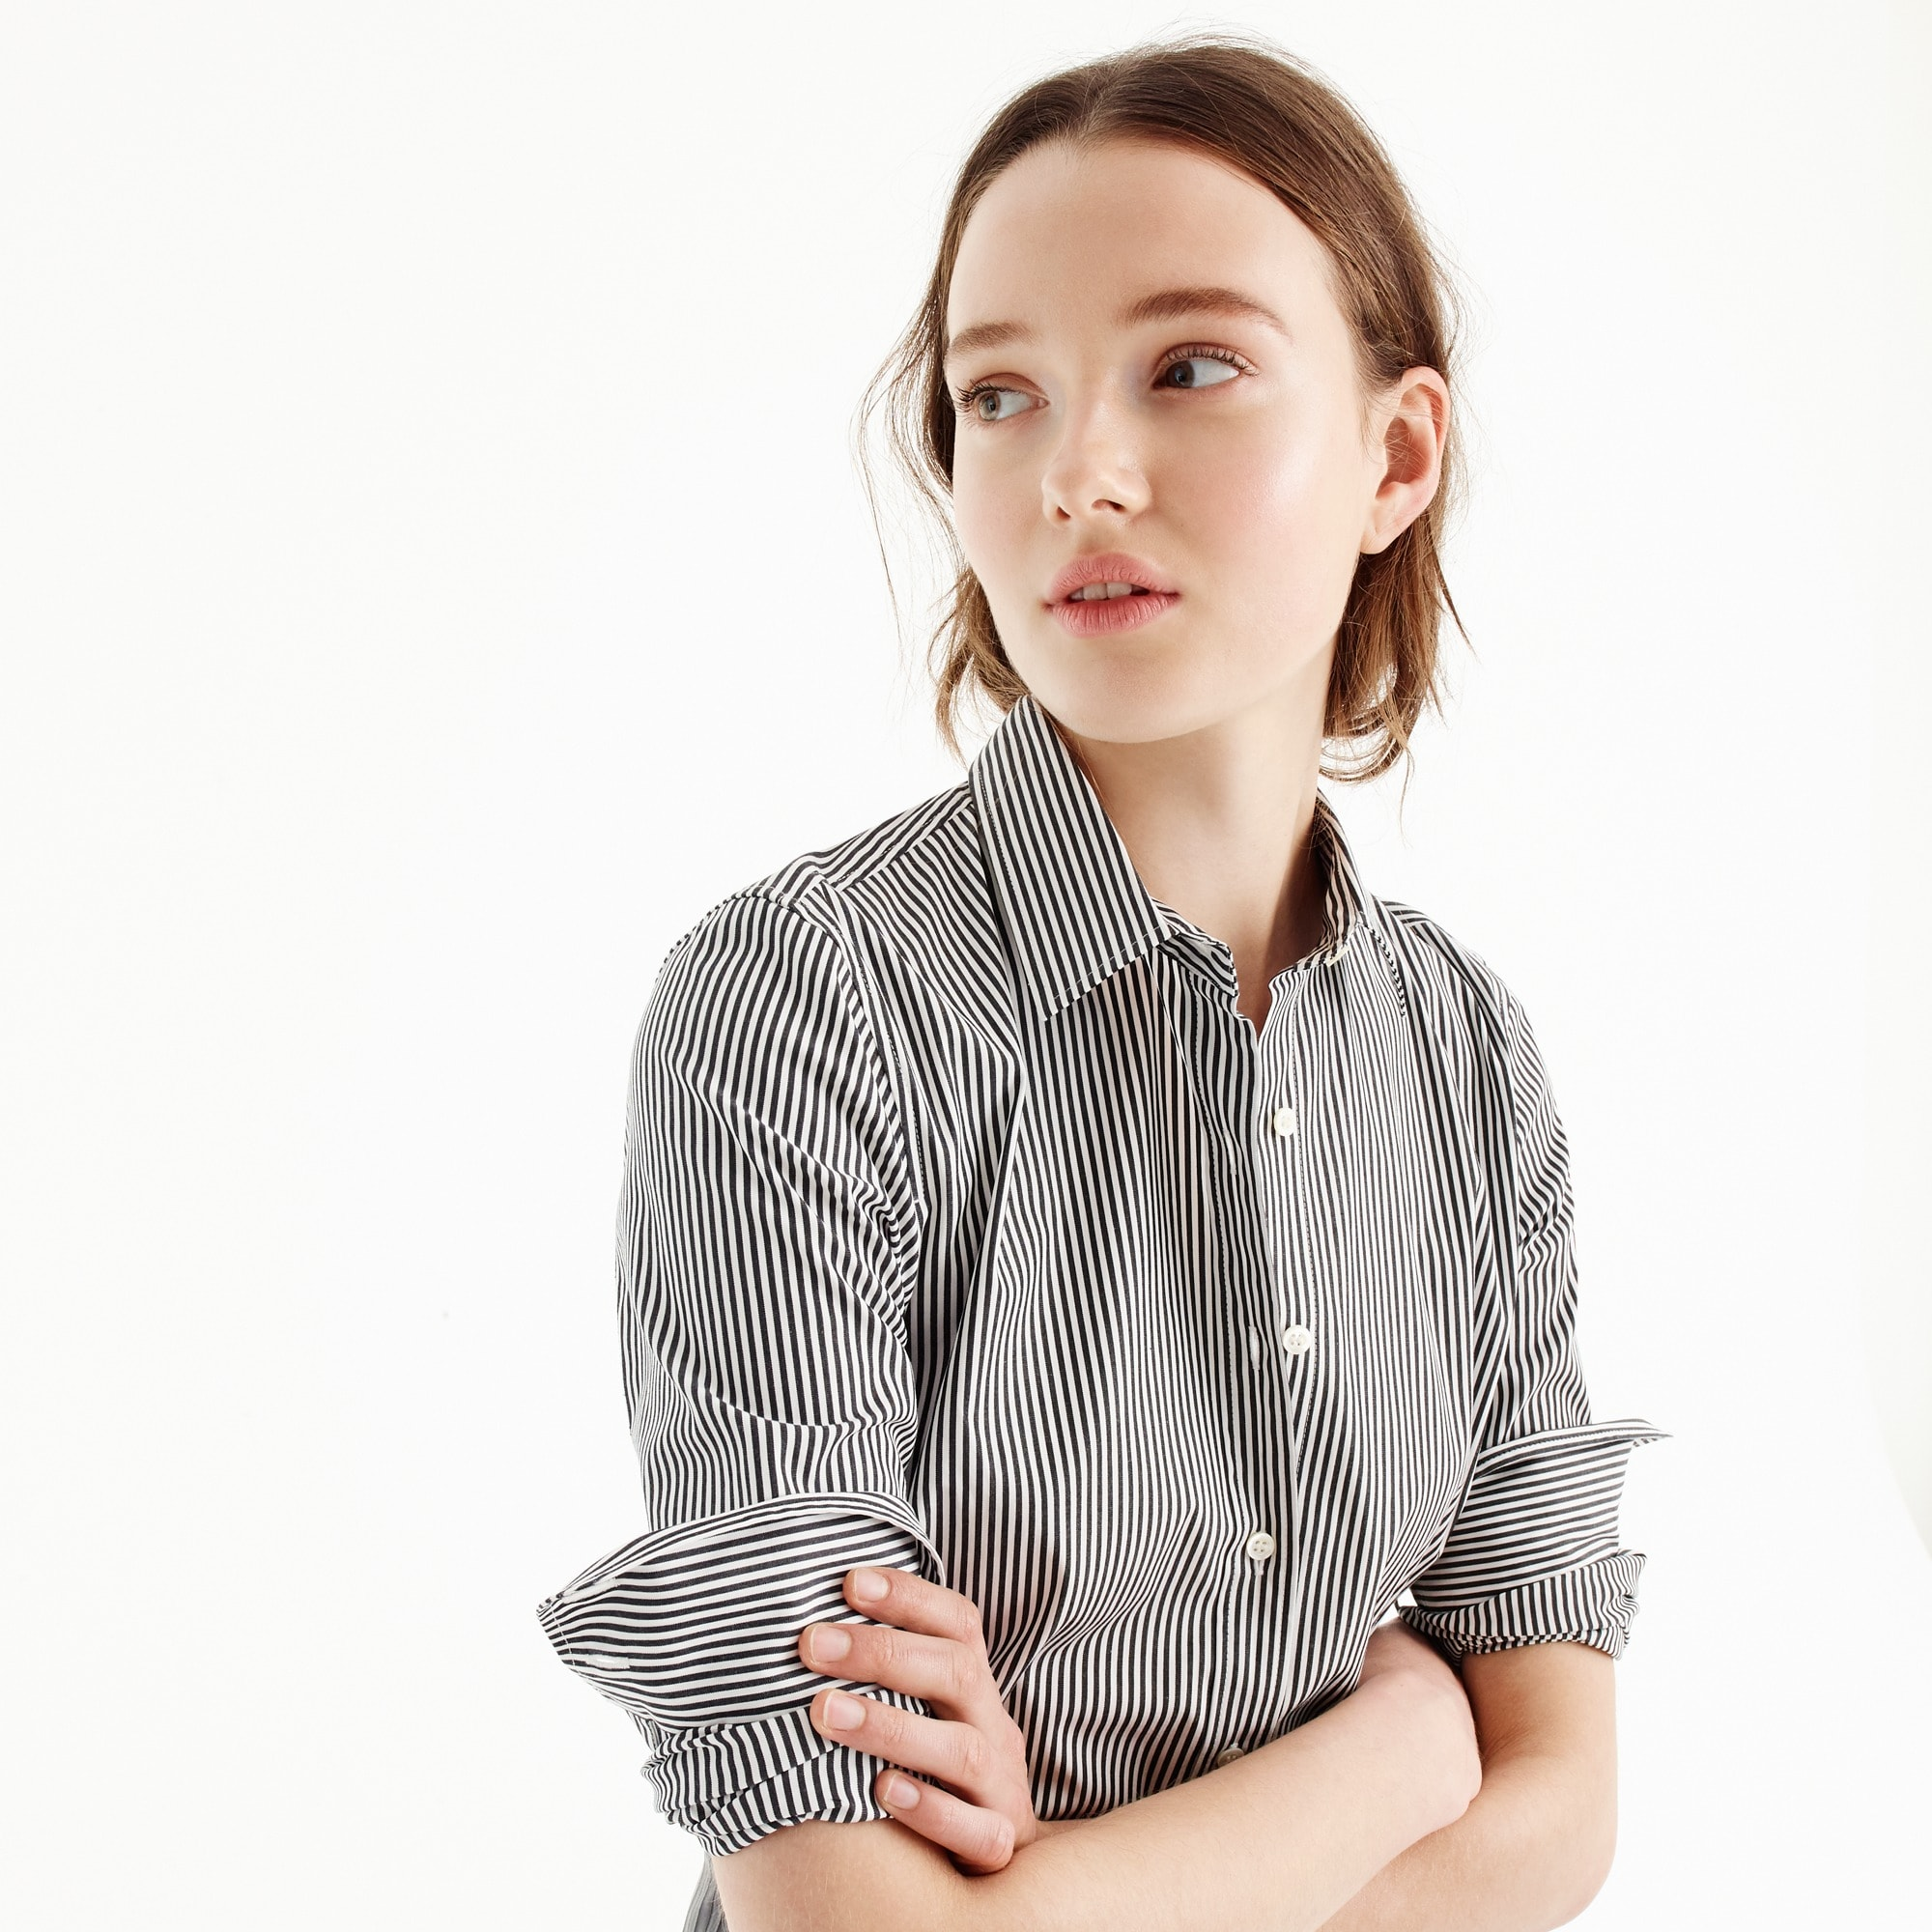 stretch perfect shirt in classic stripe : women's shirts